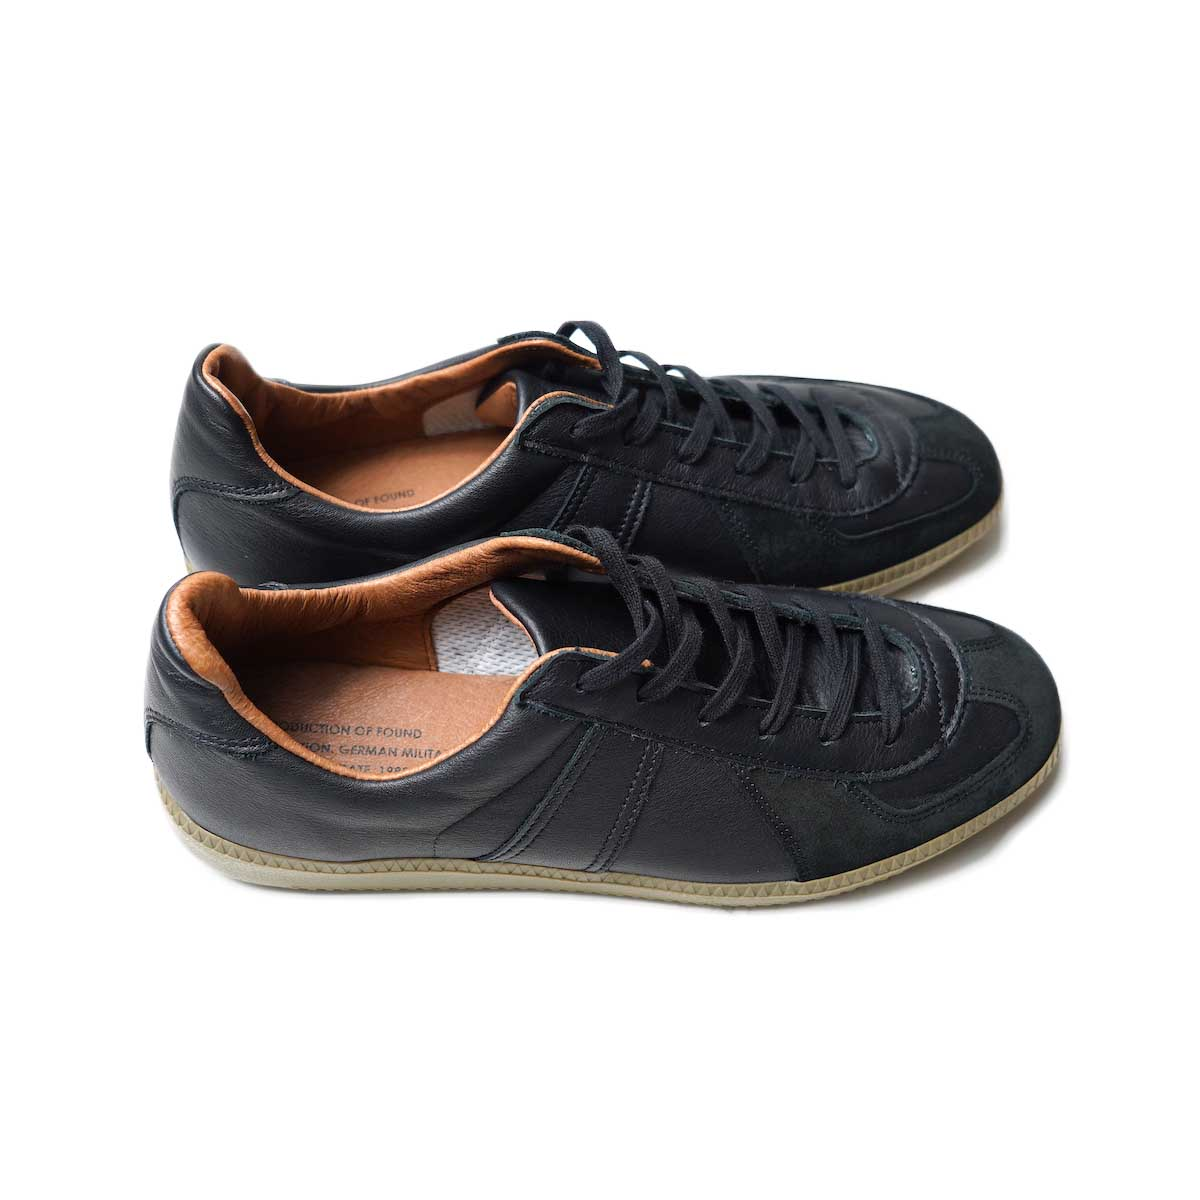 REPRODUCTION OF FOUND / GERMAN MILITARY TRAINER (Black)サイド